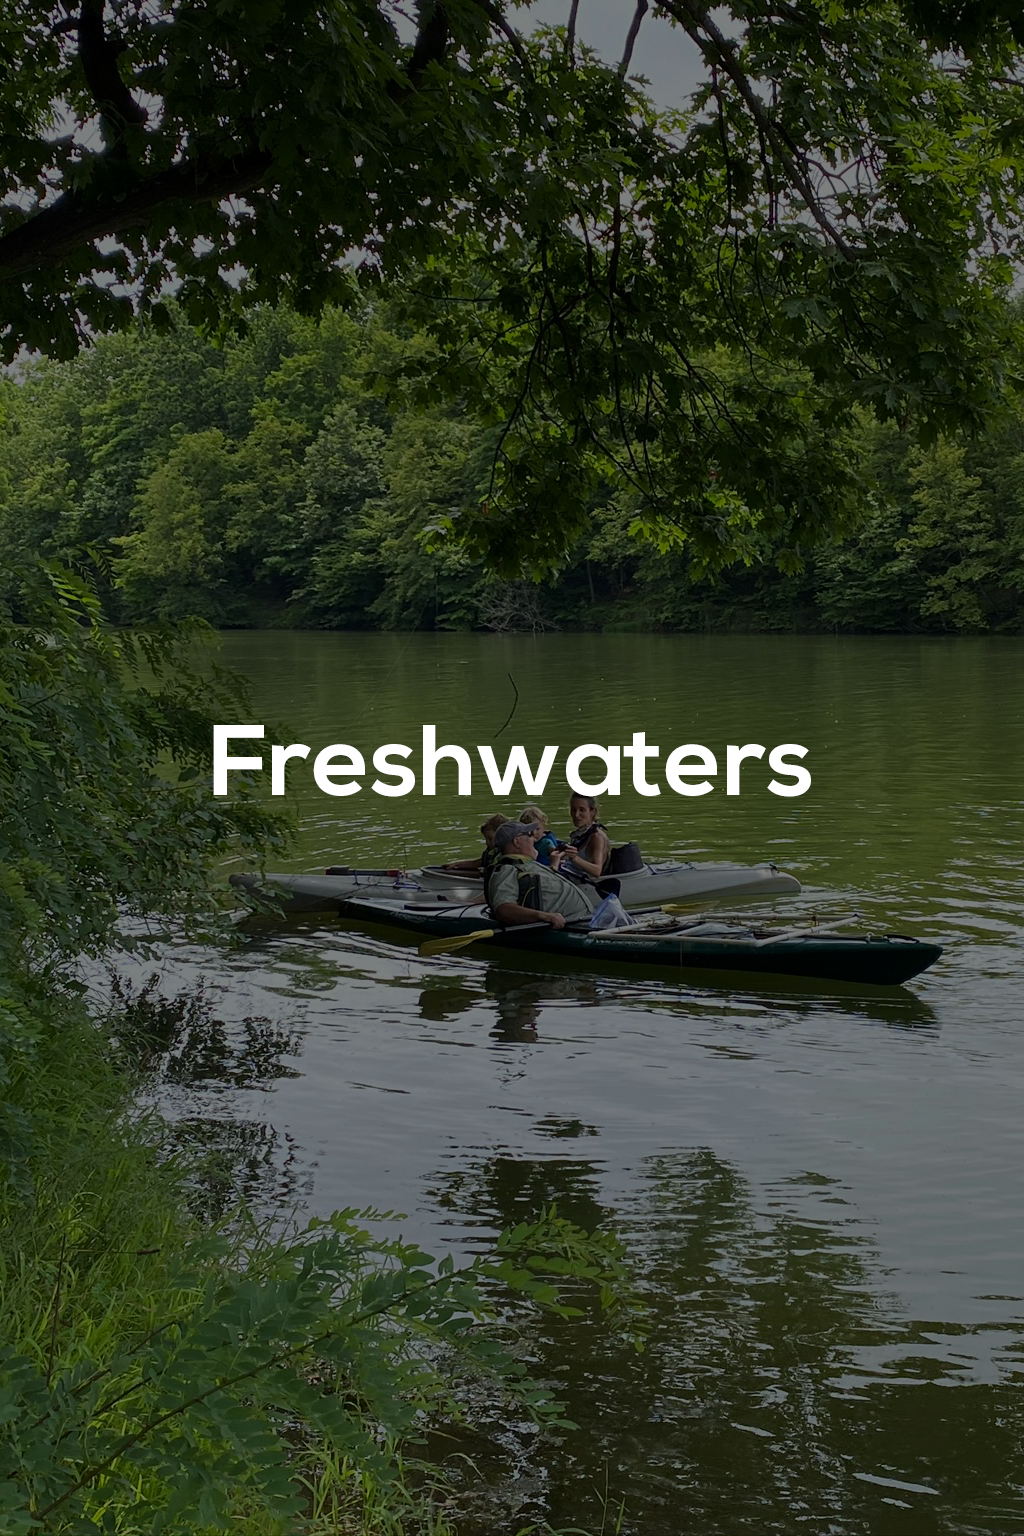 Freshwaters - title